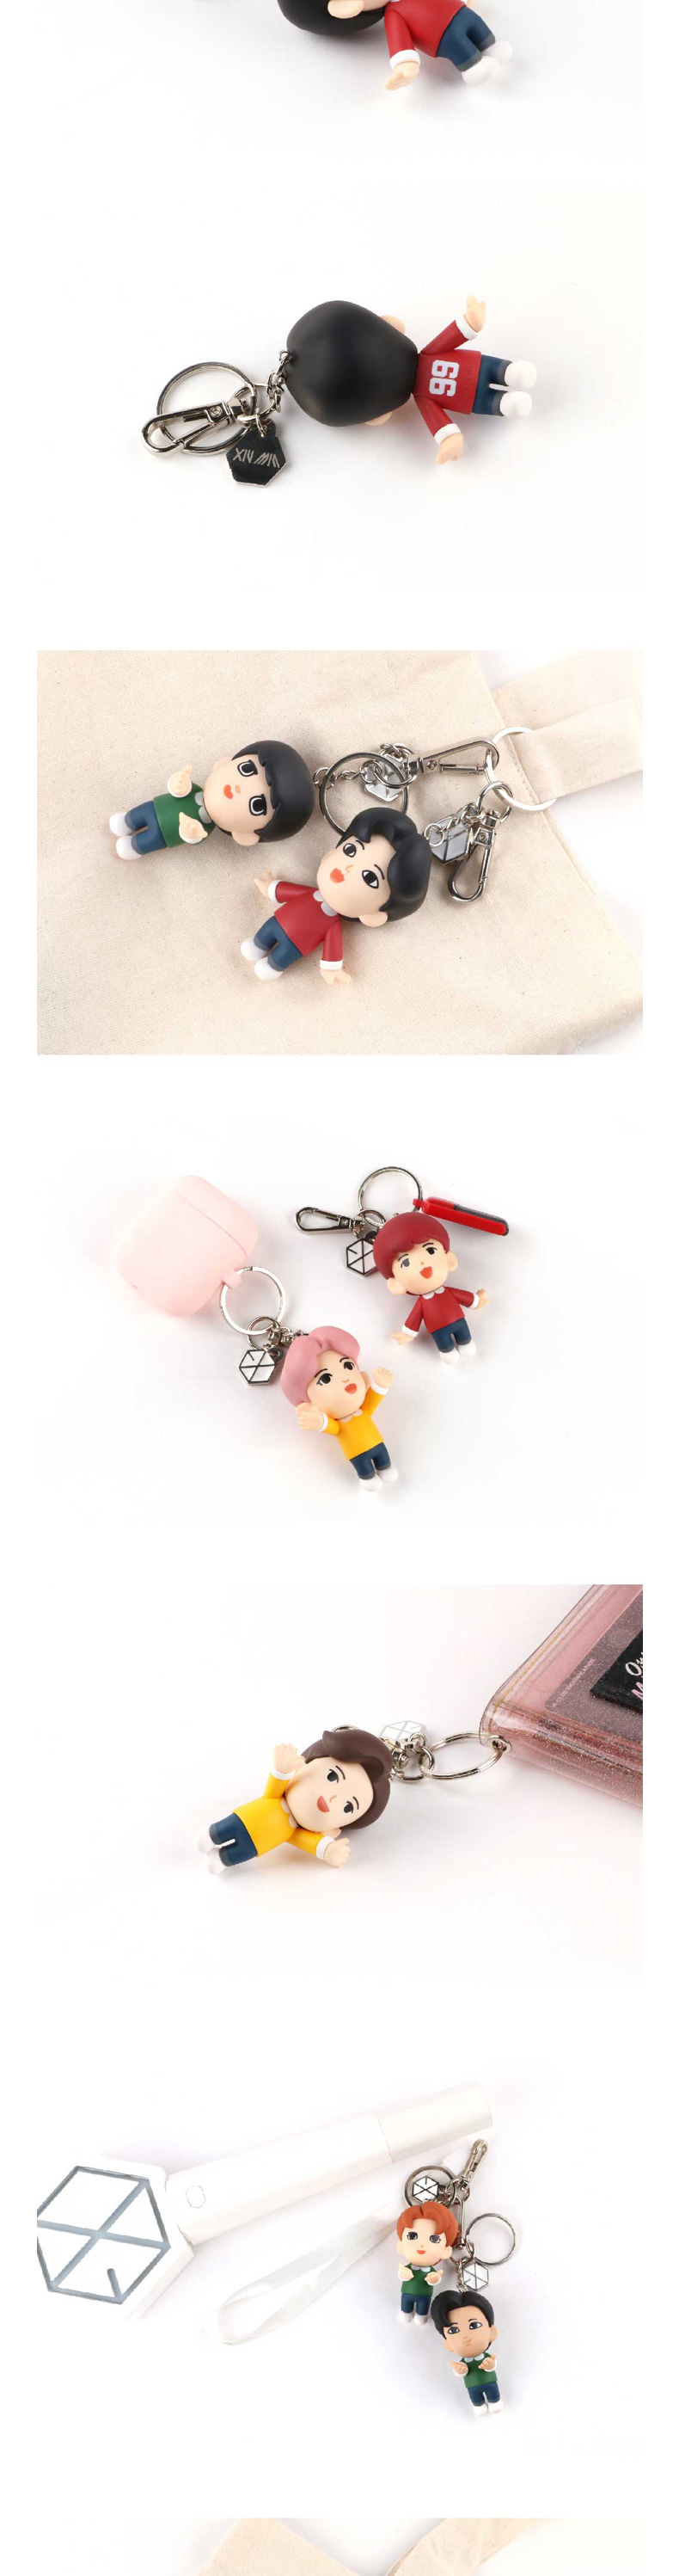 EXO - FIGURE KEYRING (BAEKHYUN) (Mirror included)